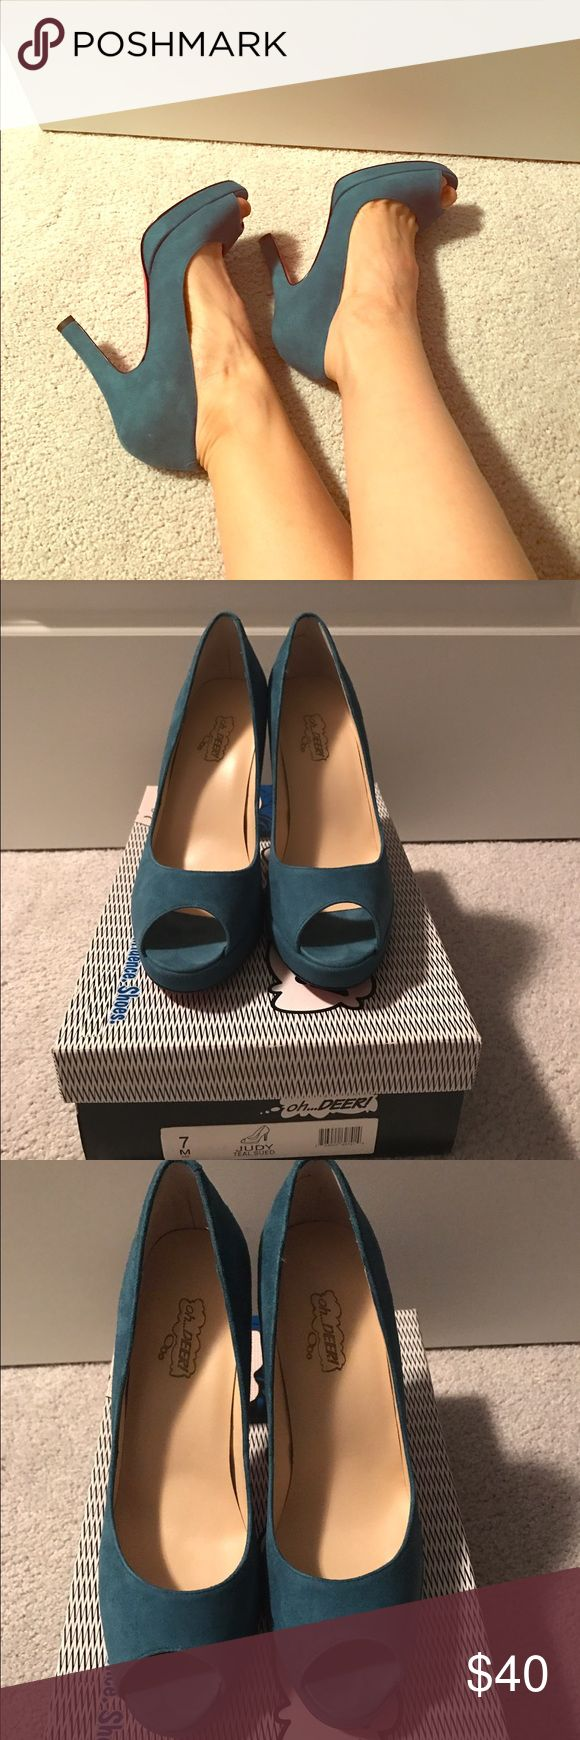 Oh deer! Red soles blue suede heels 7 Oh deer! Brand. Judy teal blue suede pumps with red soles. Excellent condition size 7. With box. Shoes Heels